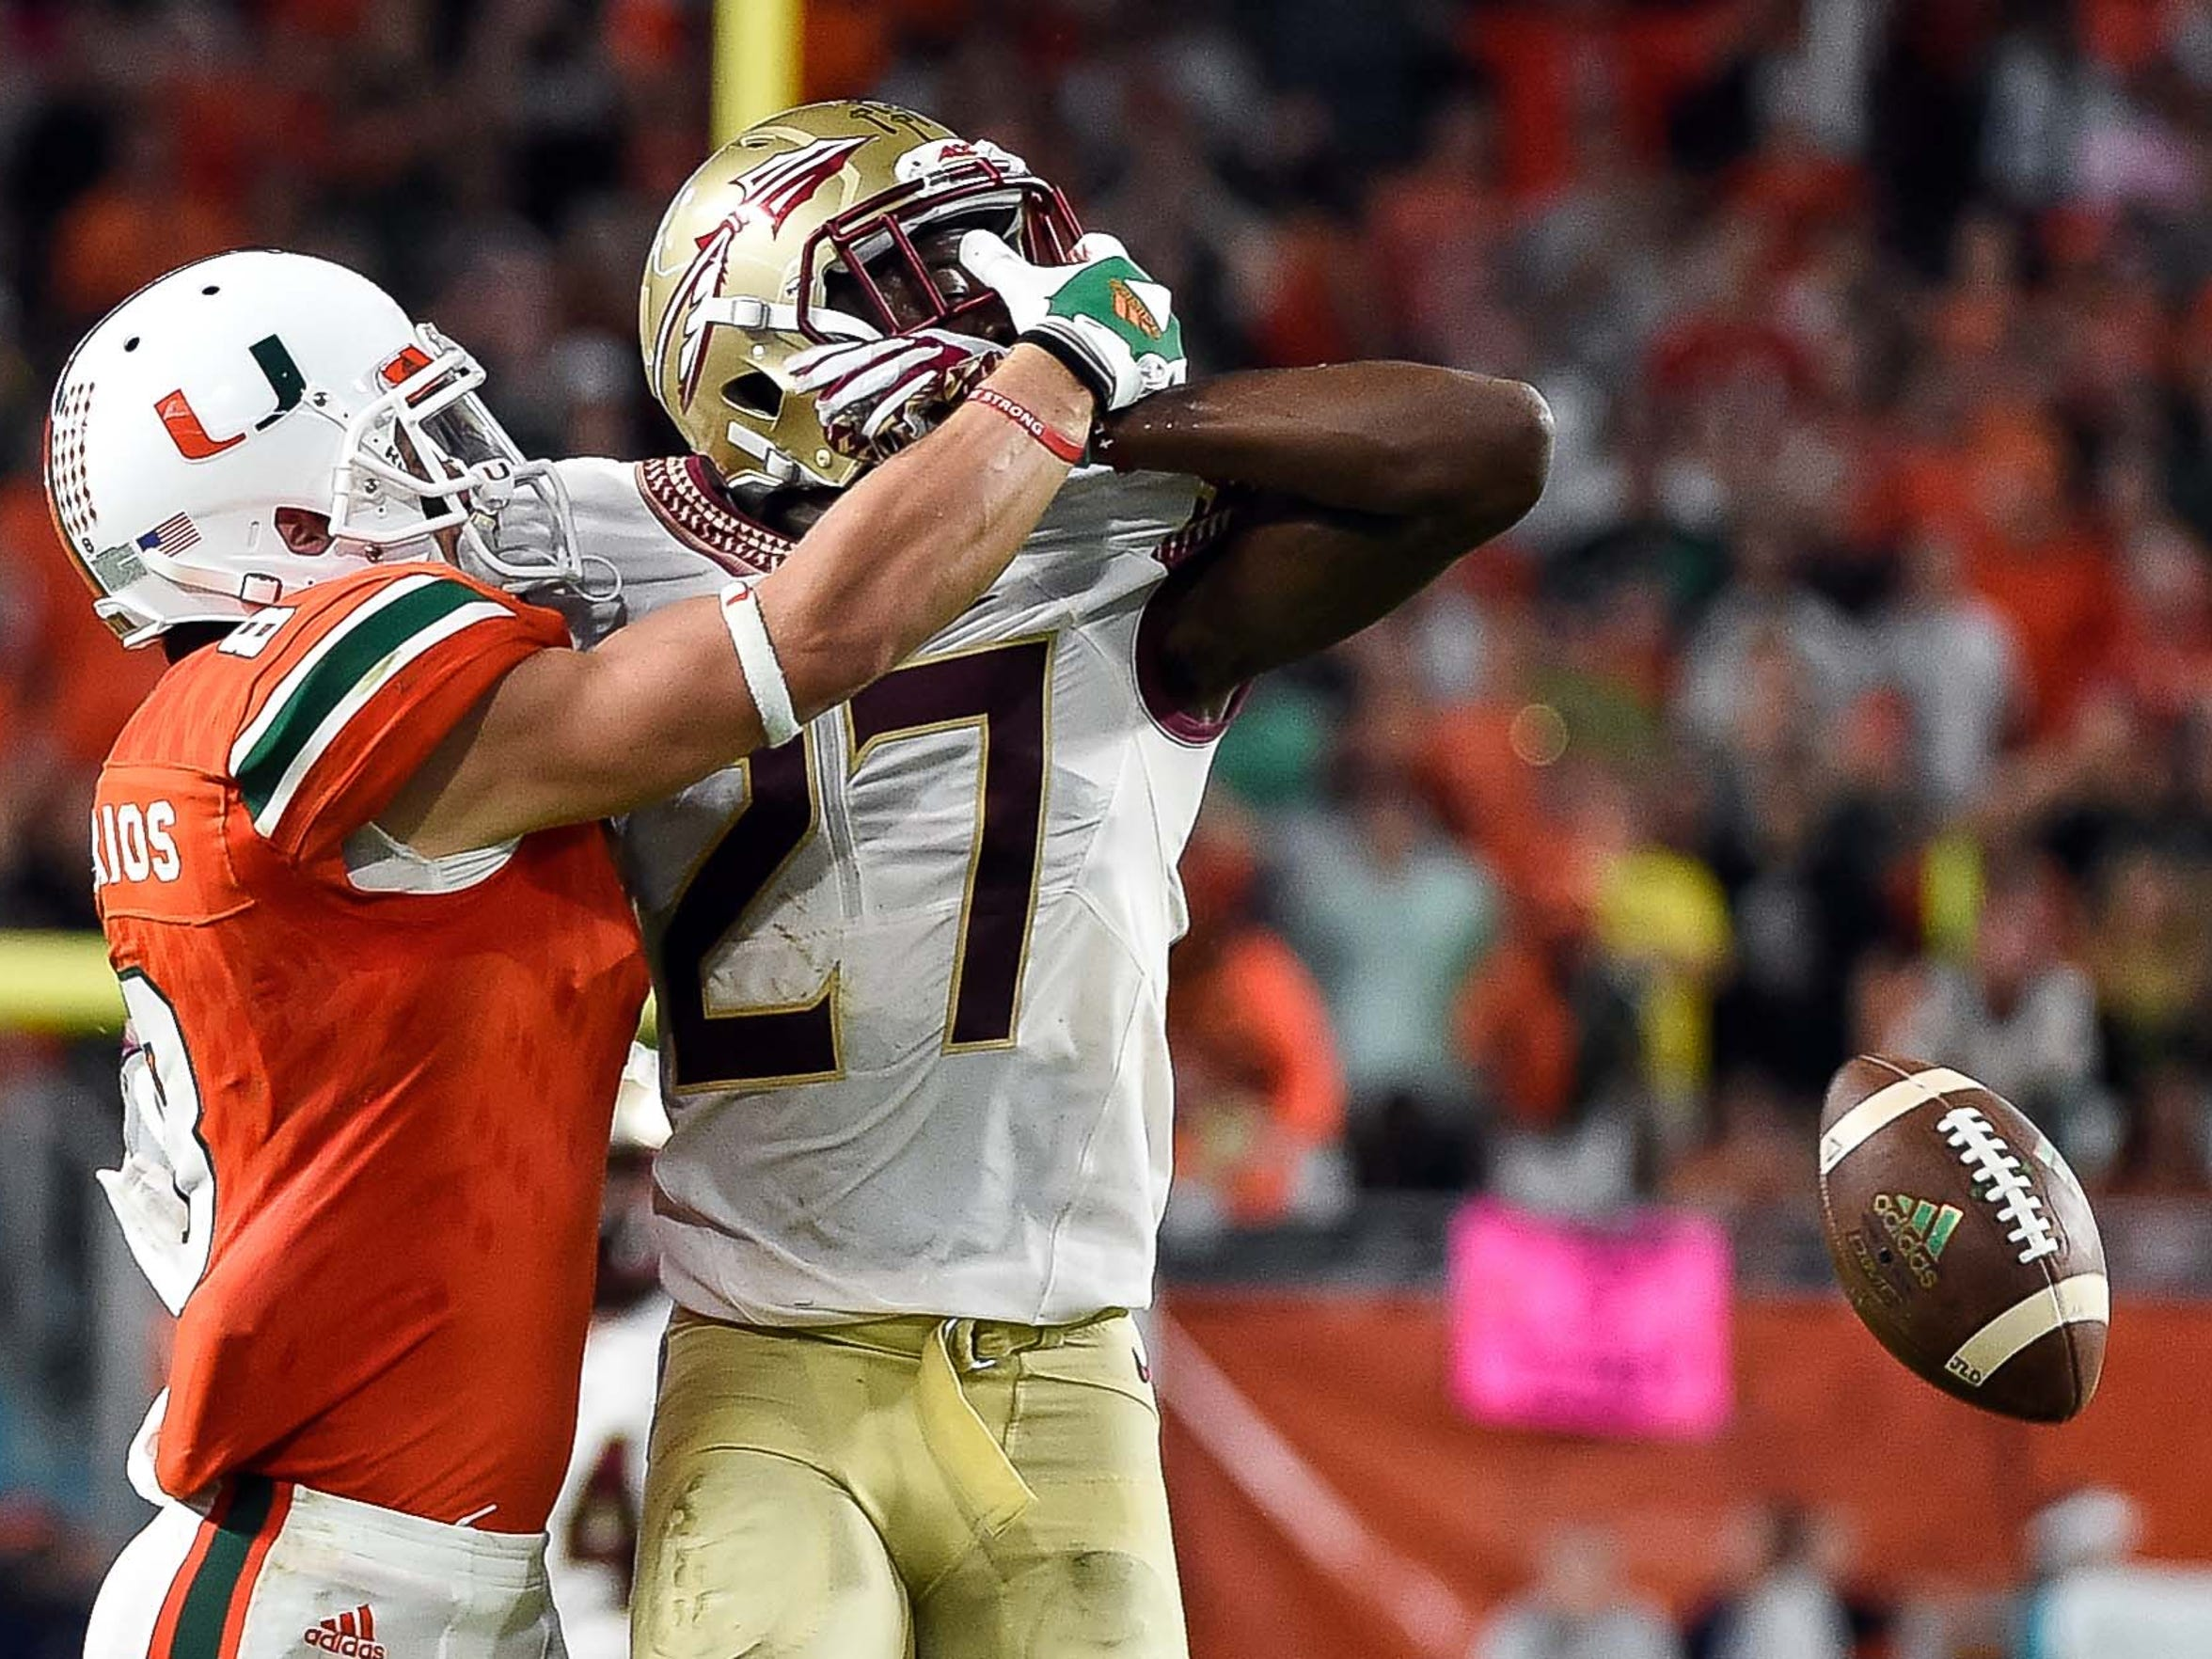 Marquez White defends a pass intended for Miami's Braxton Berrios.